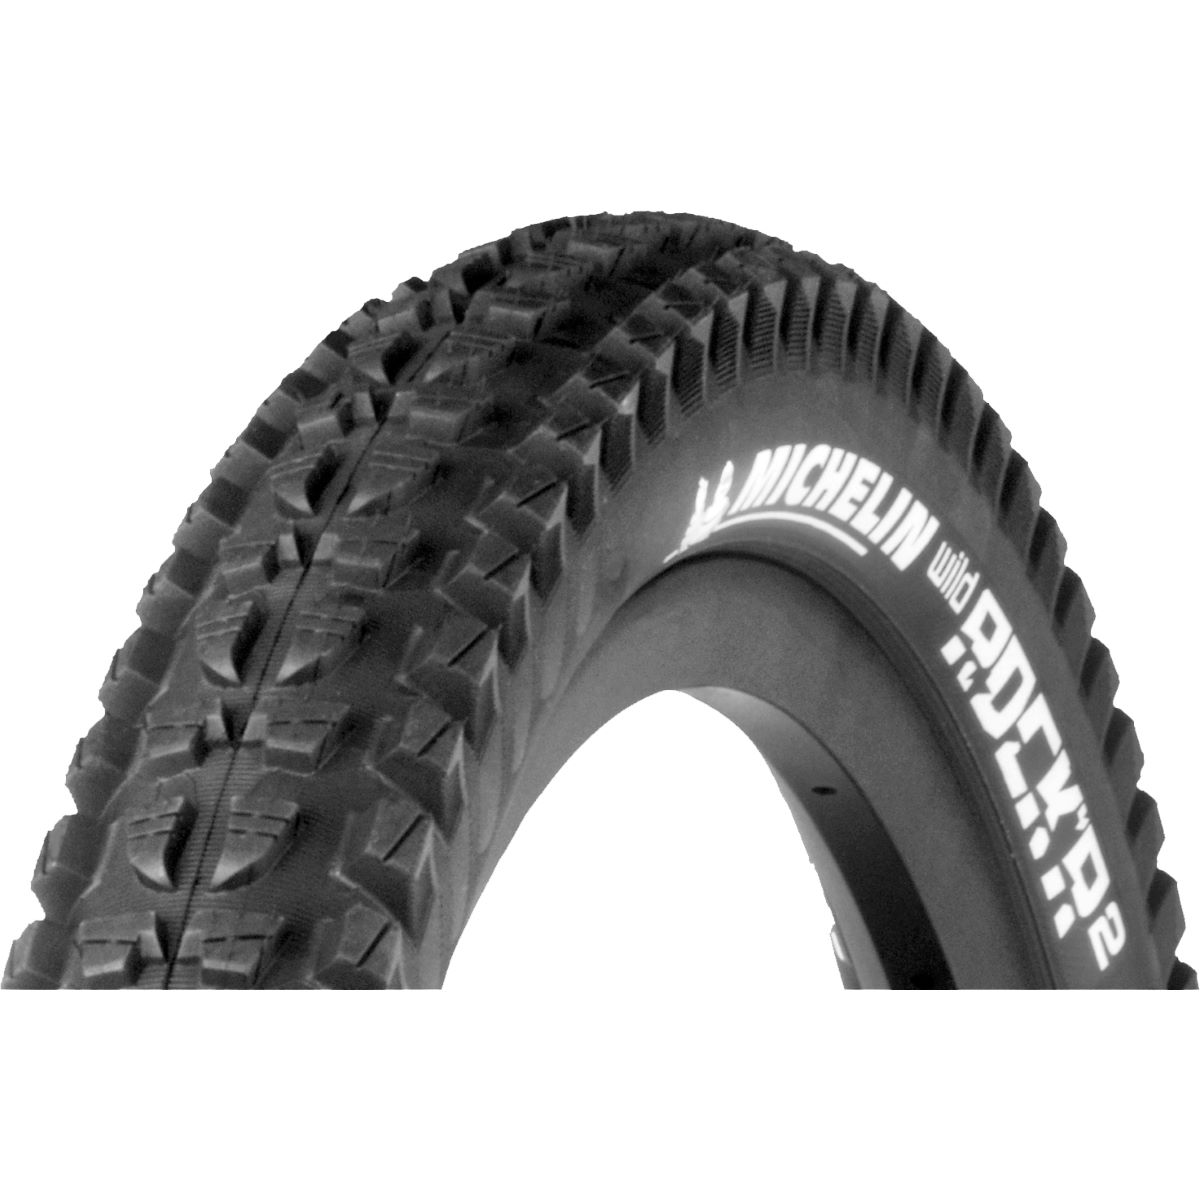 Pneu Michelin Wild Rock'r2 Advanced Reinforced Magi-X 29 pouces - Noir